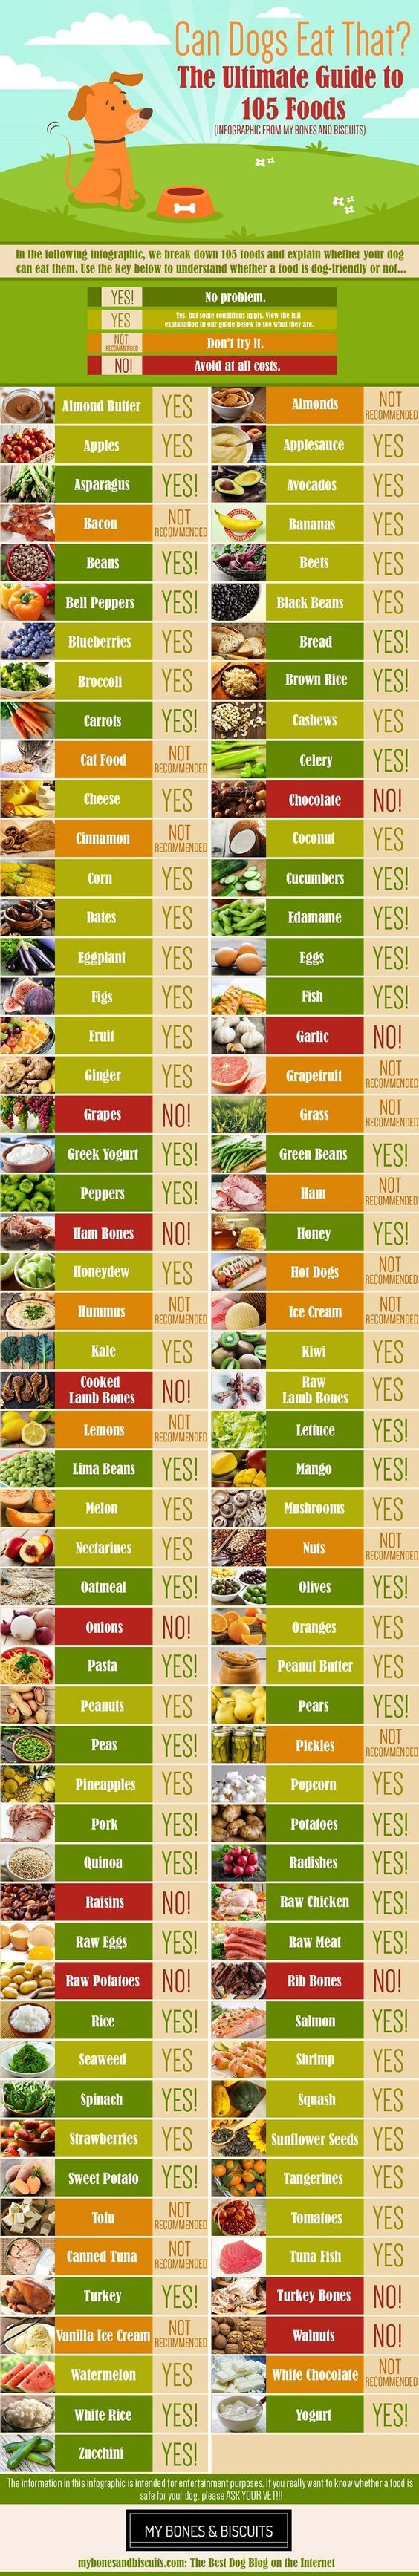 Can Dogs Eat This? EPIC Guide to 105 Foods | Apples Bananas Grapes Berries Watermelon | My Bones & Biscuits